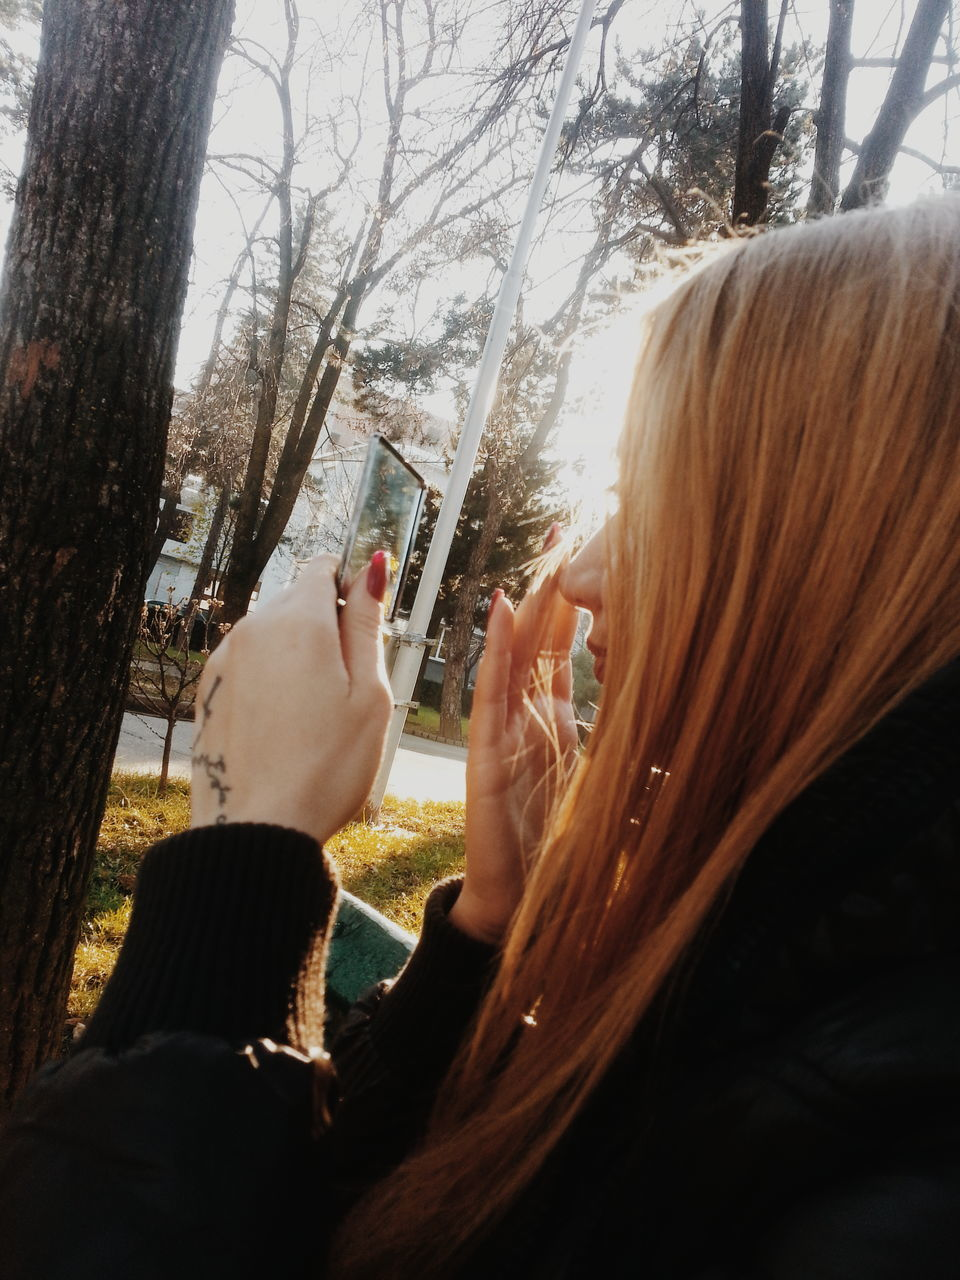 real people, tree, leisure activity, photographing, tree trunk, cellphone, one person, day, technology, lifestyles, photography themes, wireless technology, outdoors, human hand, nature, close-up